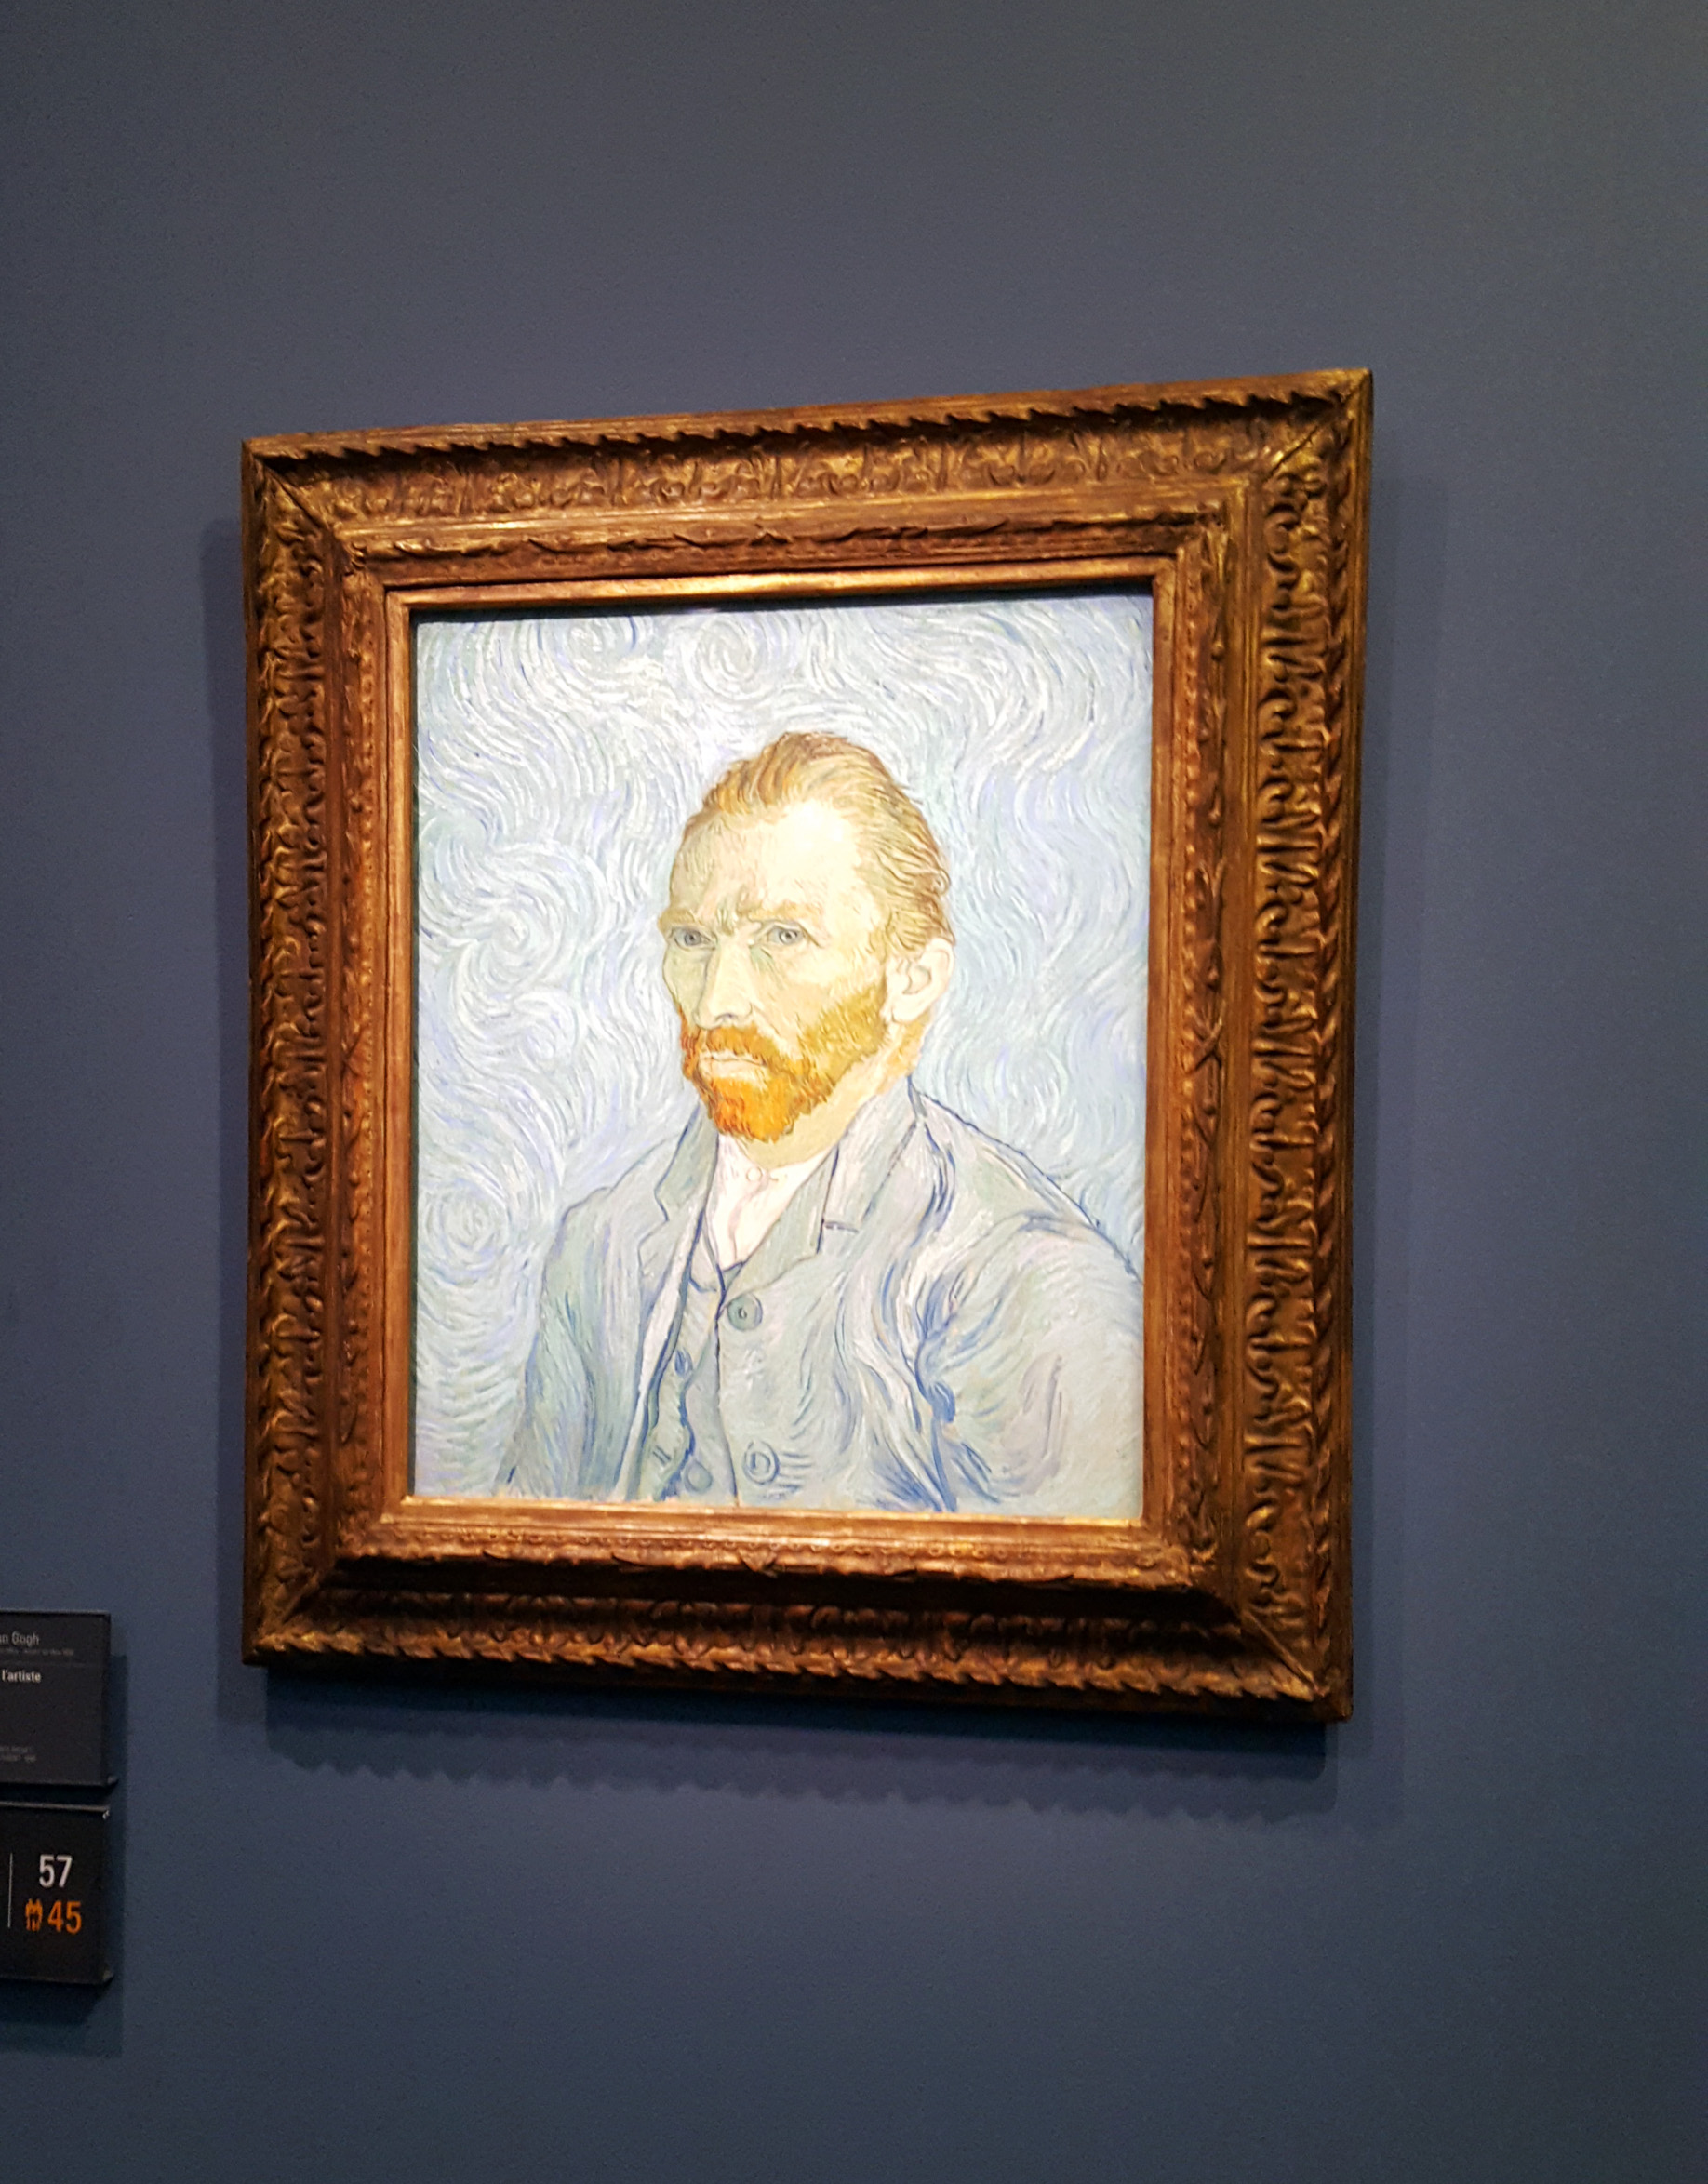 Painting by Van Gogh at the Musee d'Orsay in Paris, France - visiting the Musee d'Orsay at night